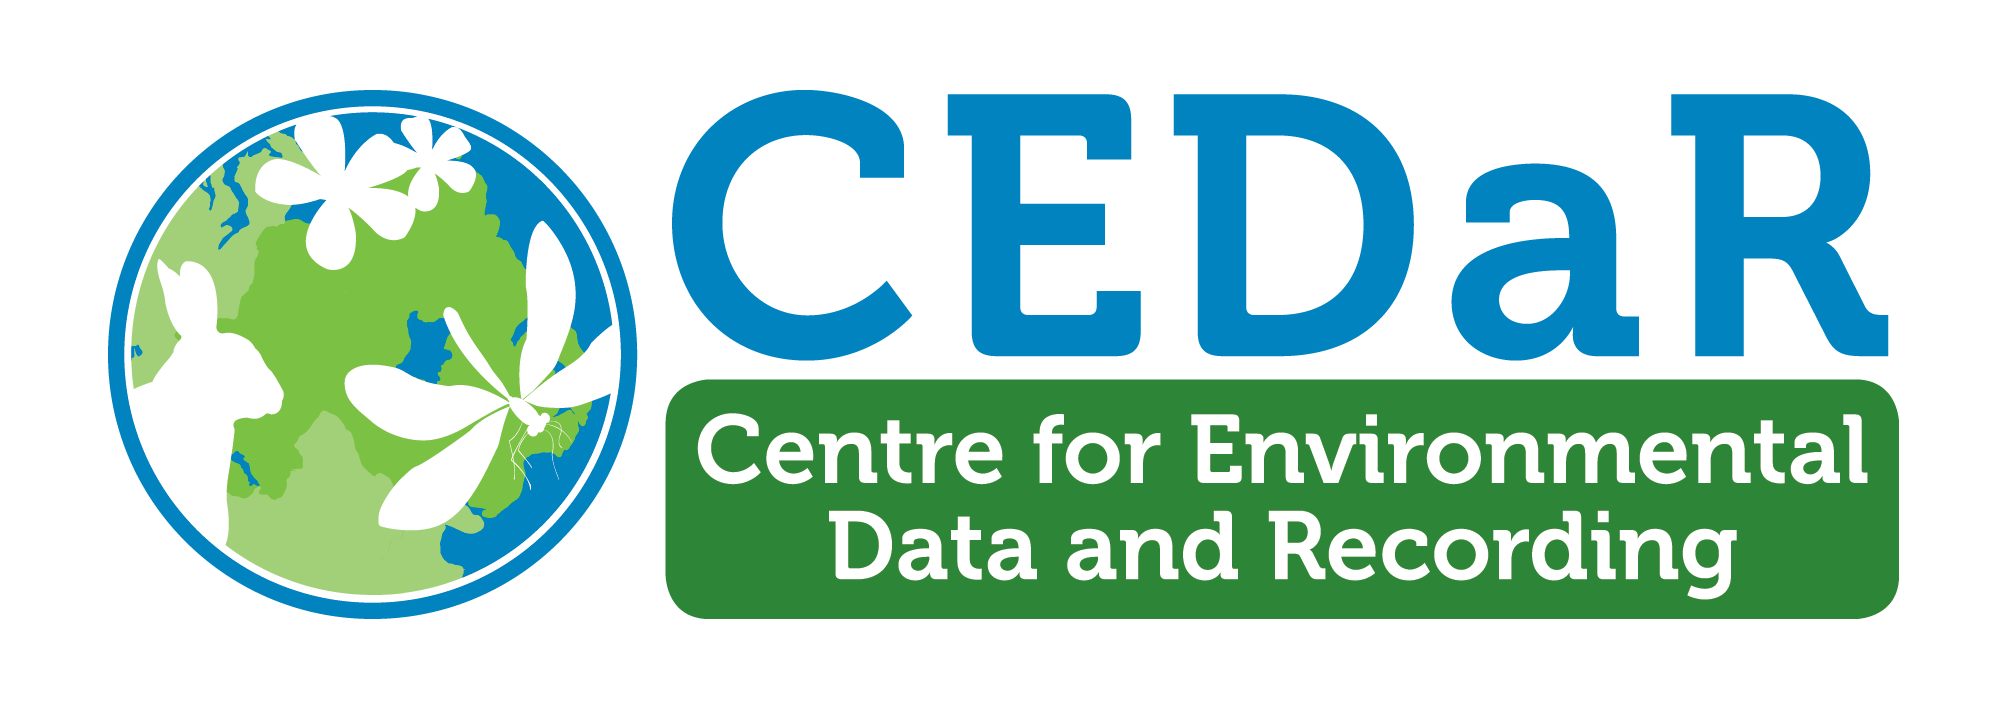 Centre for Environmental Data and Recording logo